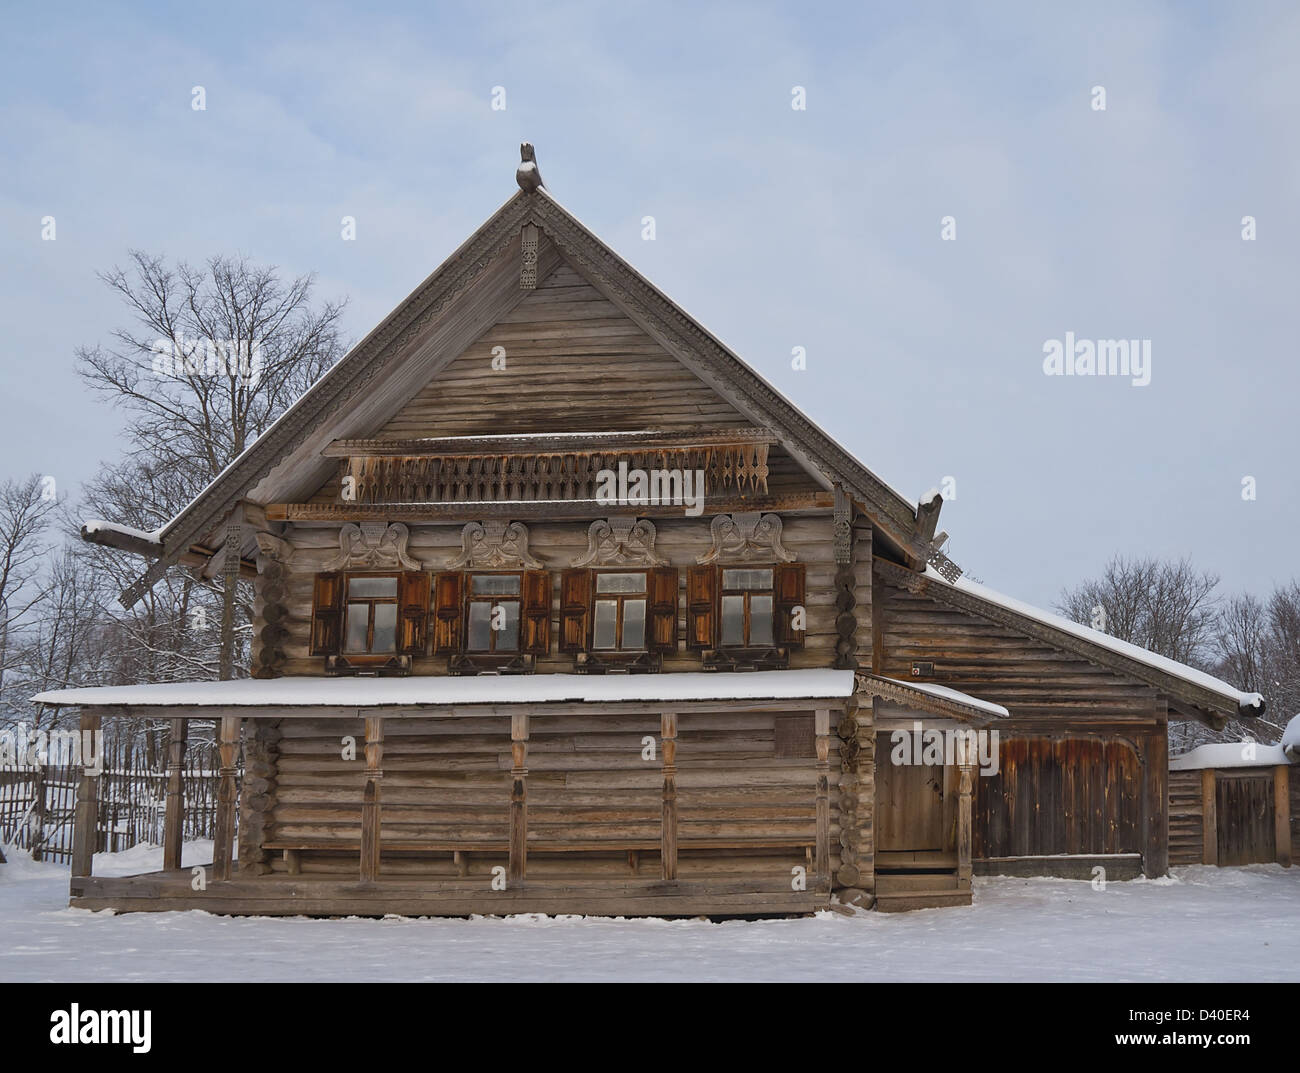 Russian peasant house (circa XIX c.) from Ryshevo village. Vitoslavlitsy open-air museum. Novgorod the Great, Russia - Stock Image